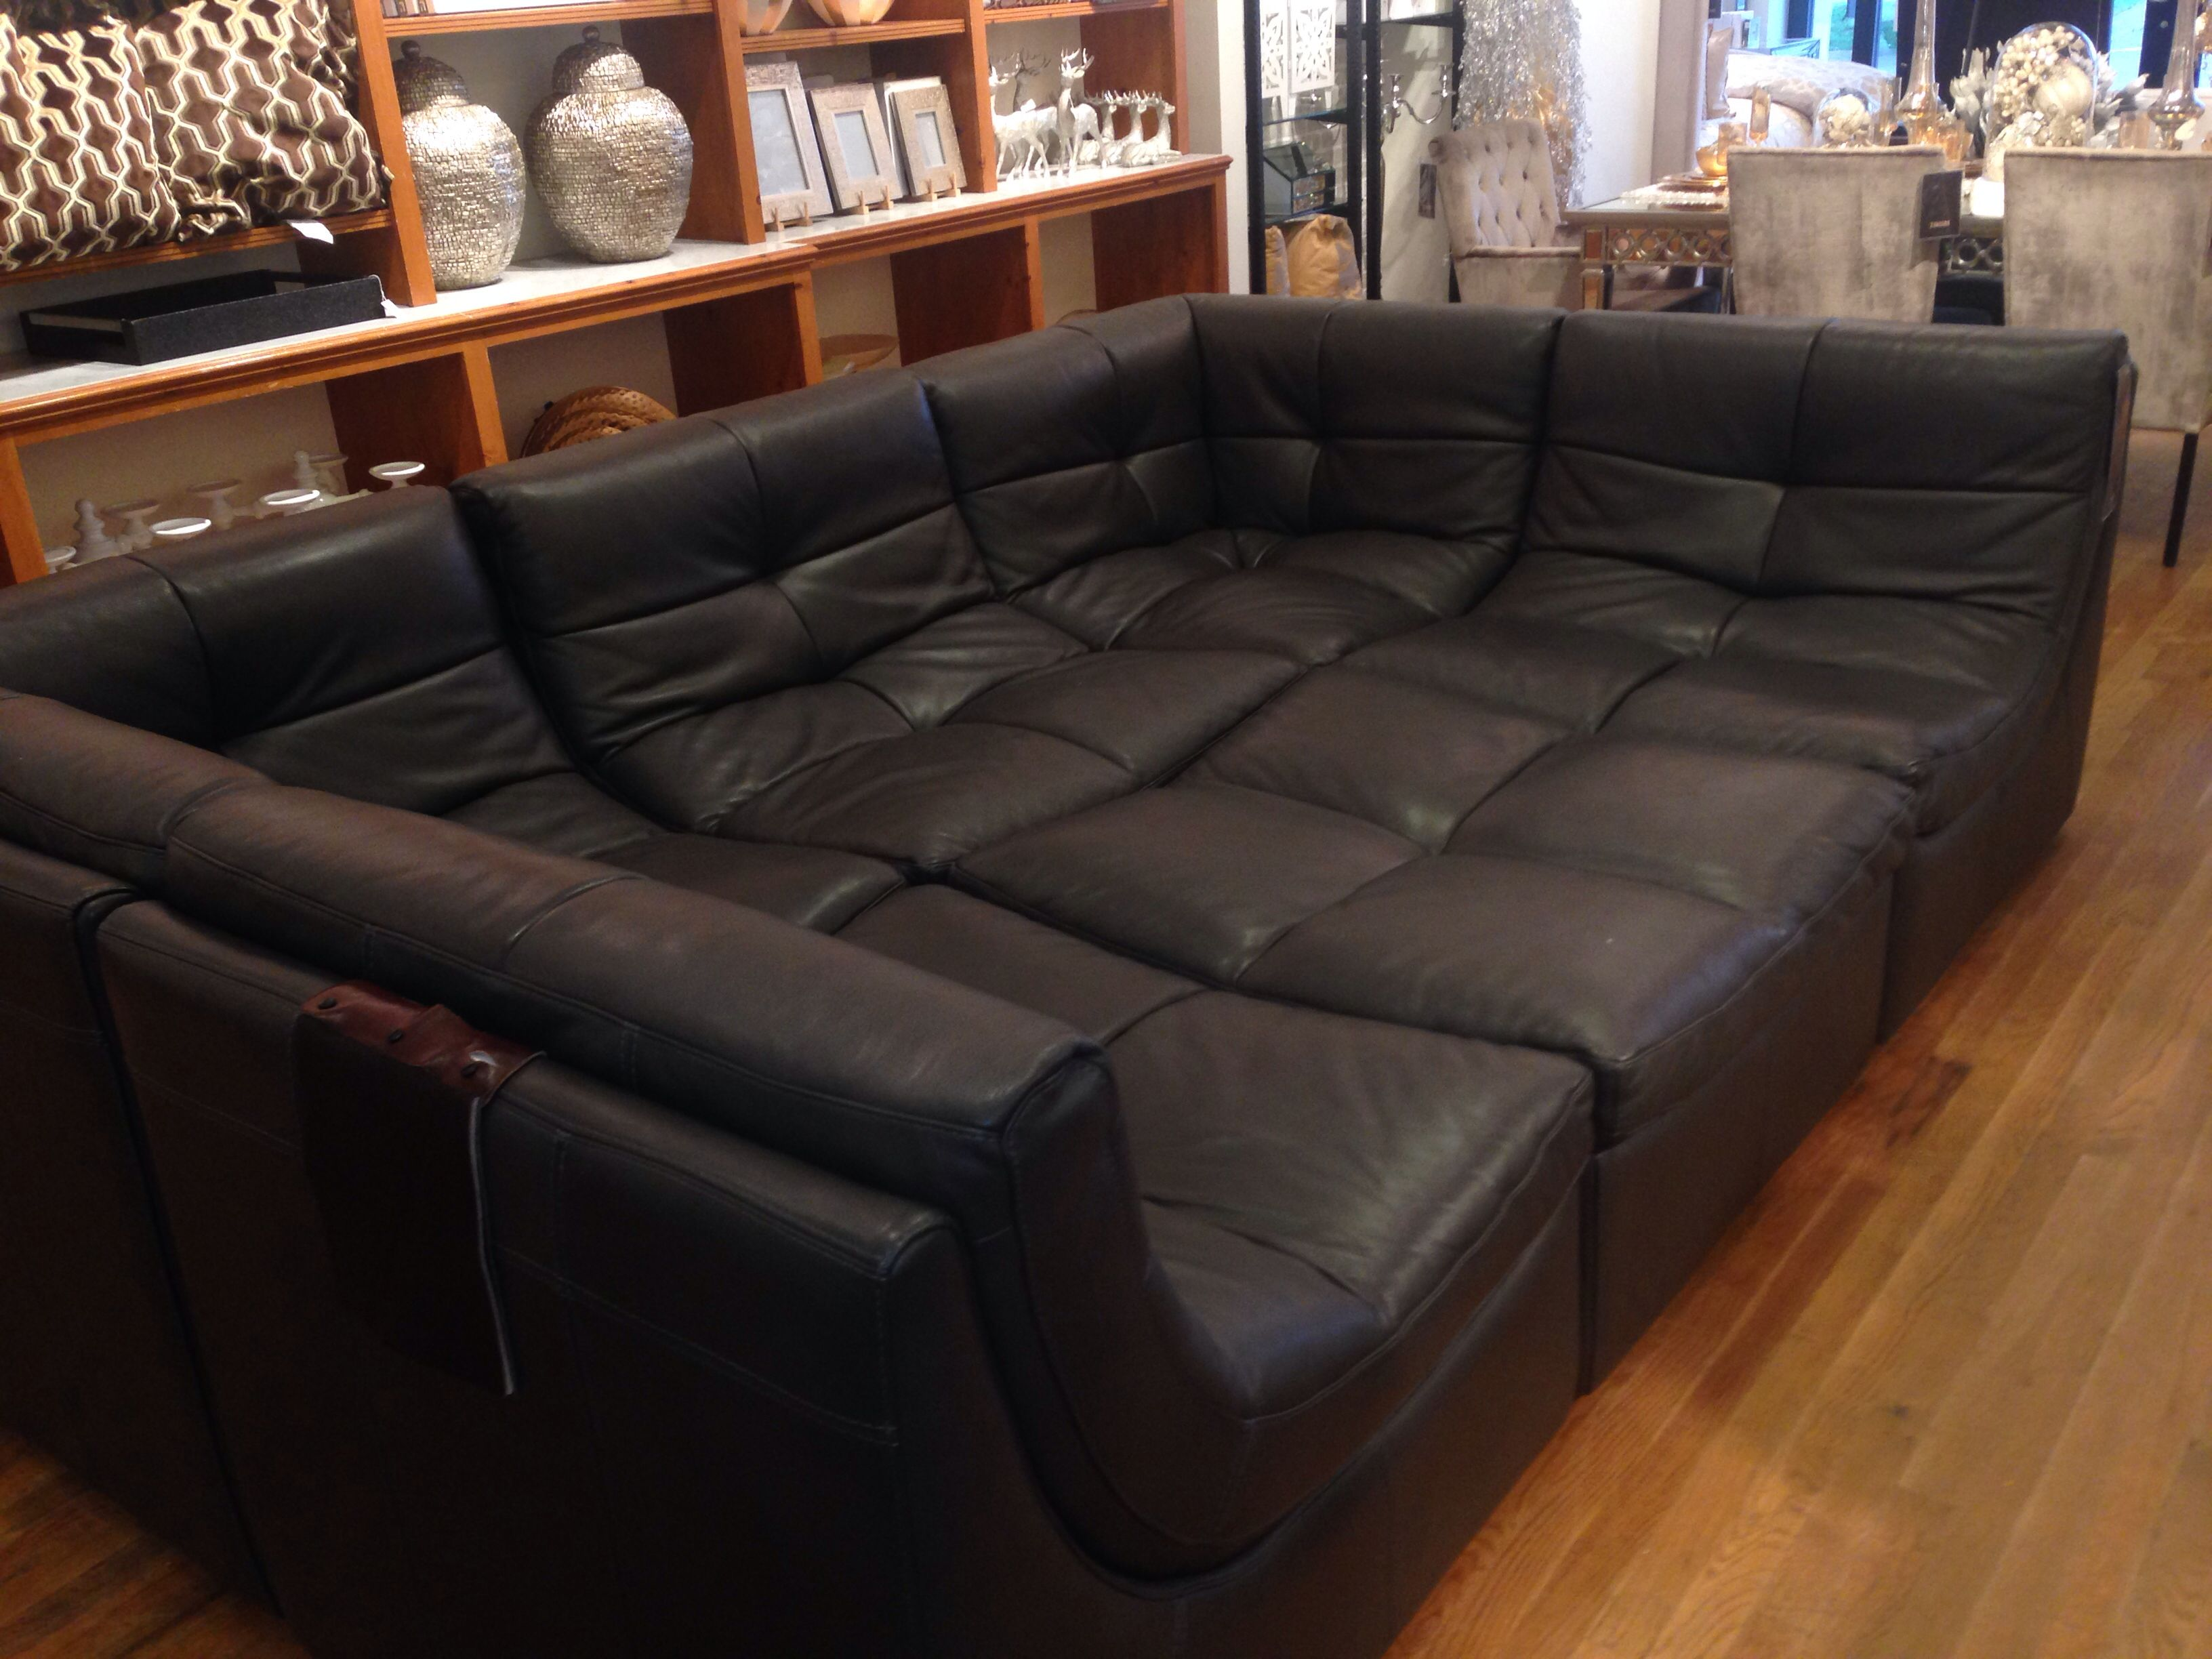 Large Couch Large Couch Extra Large Sectional Sofa Large